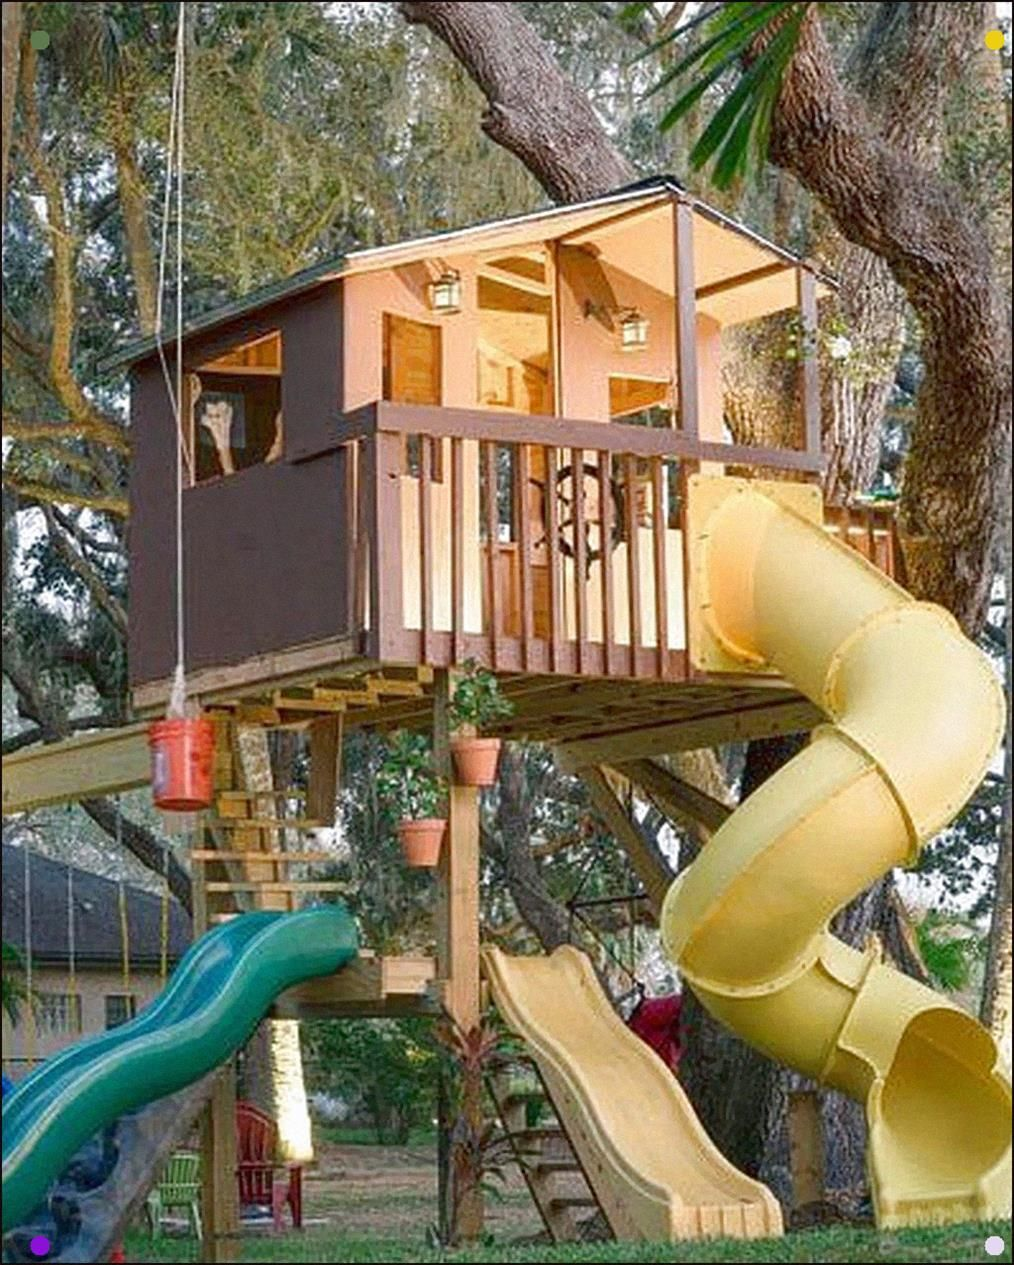 34 Stunning Tree House Designs You Never Seen Before Magzhouse Tree House Diy Tree House Kids Tree House Plans Backyard treehouse treehouse ideas